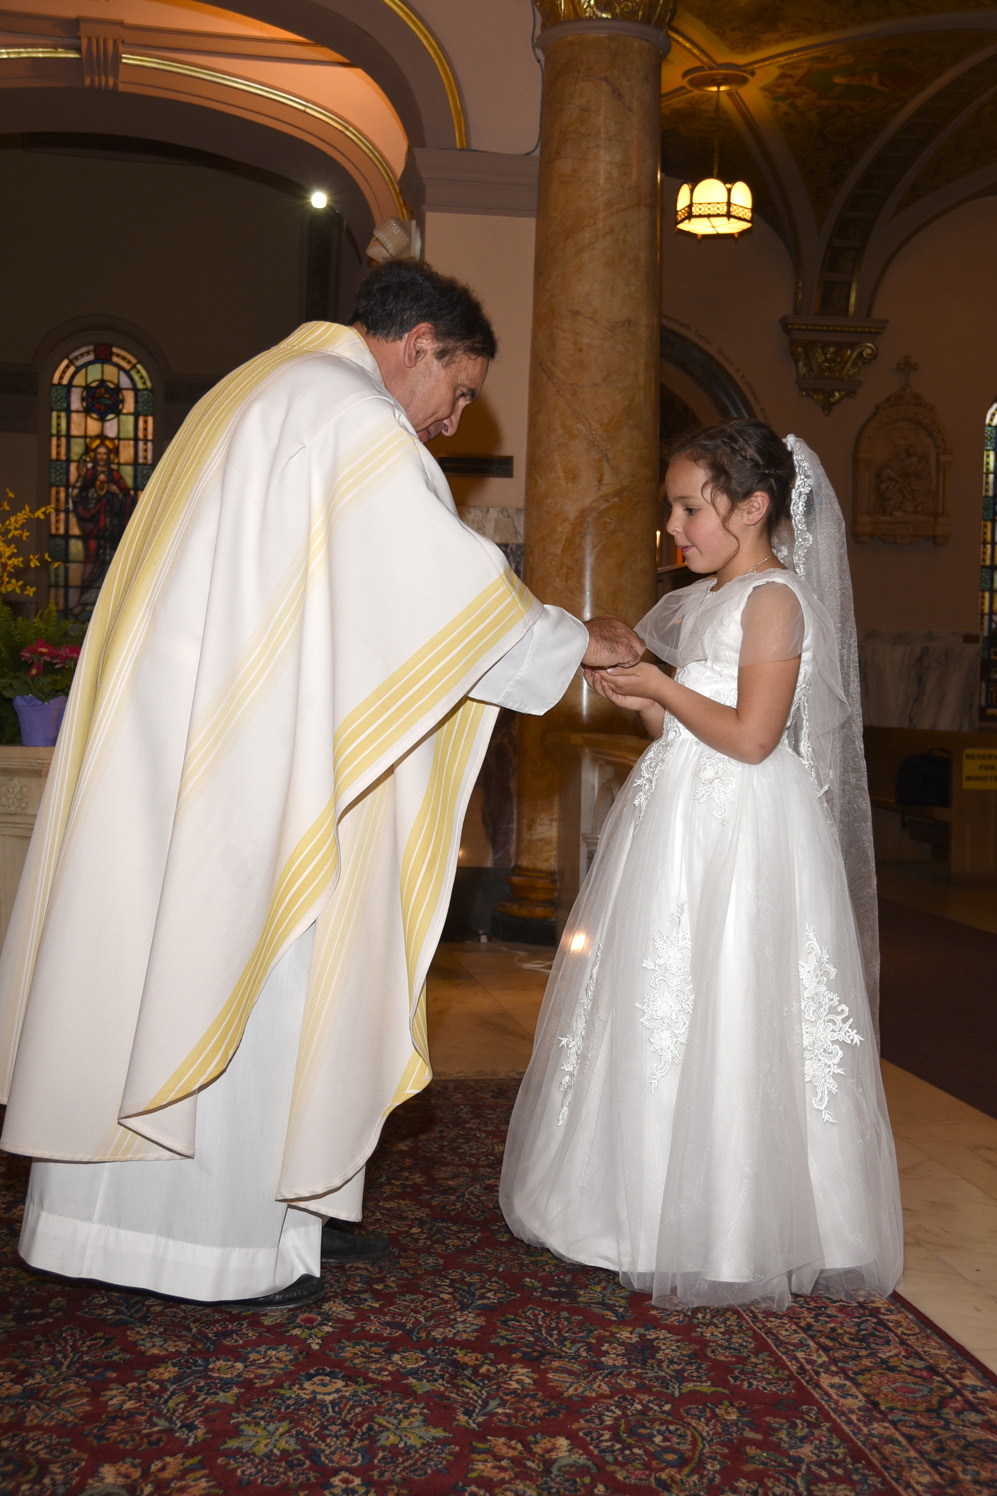 FIRST-COMMUNION-MAY-2-2021-1001001258